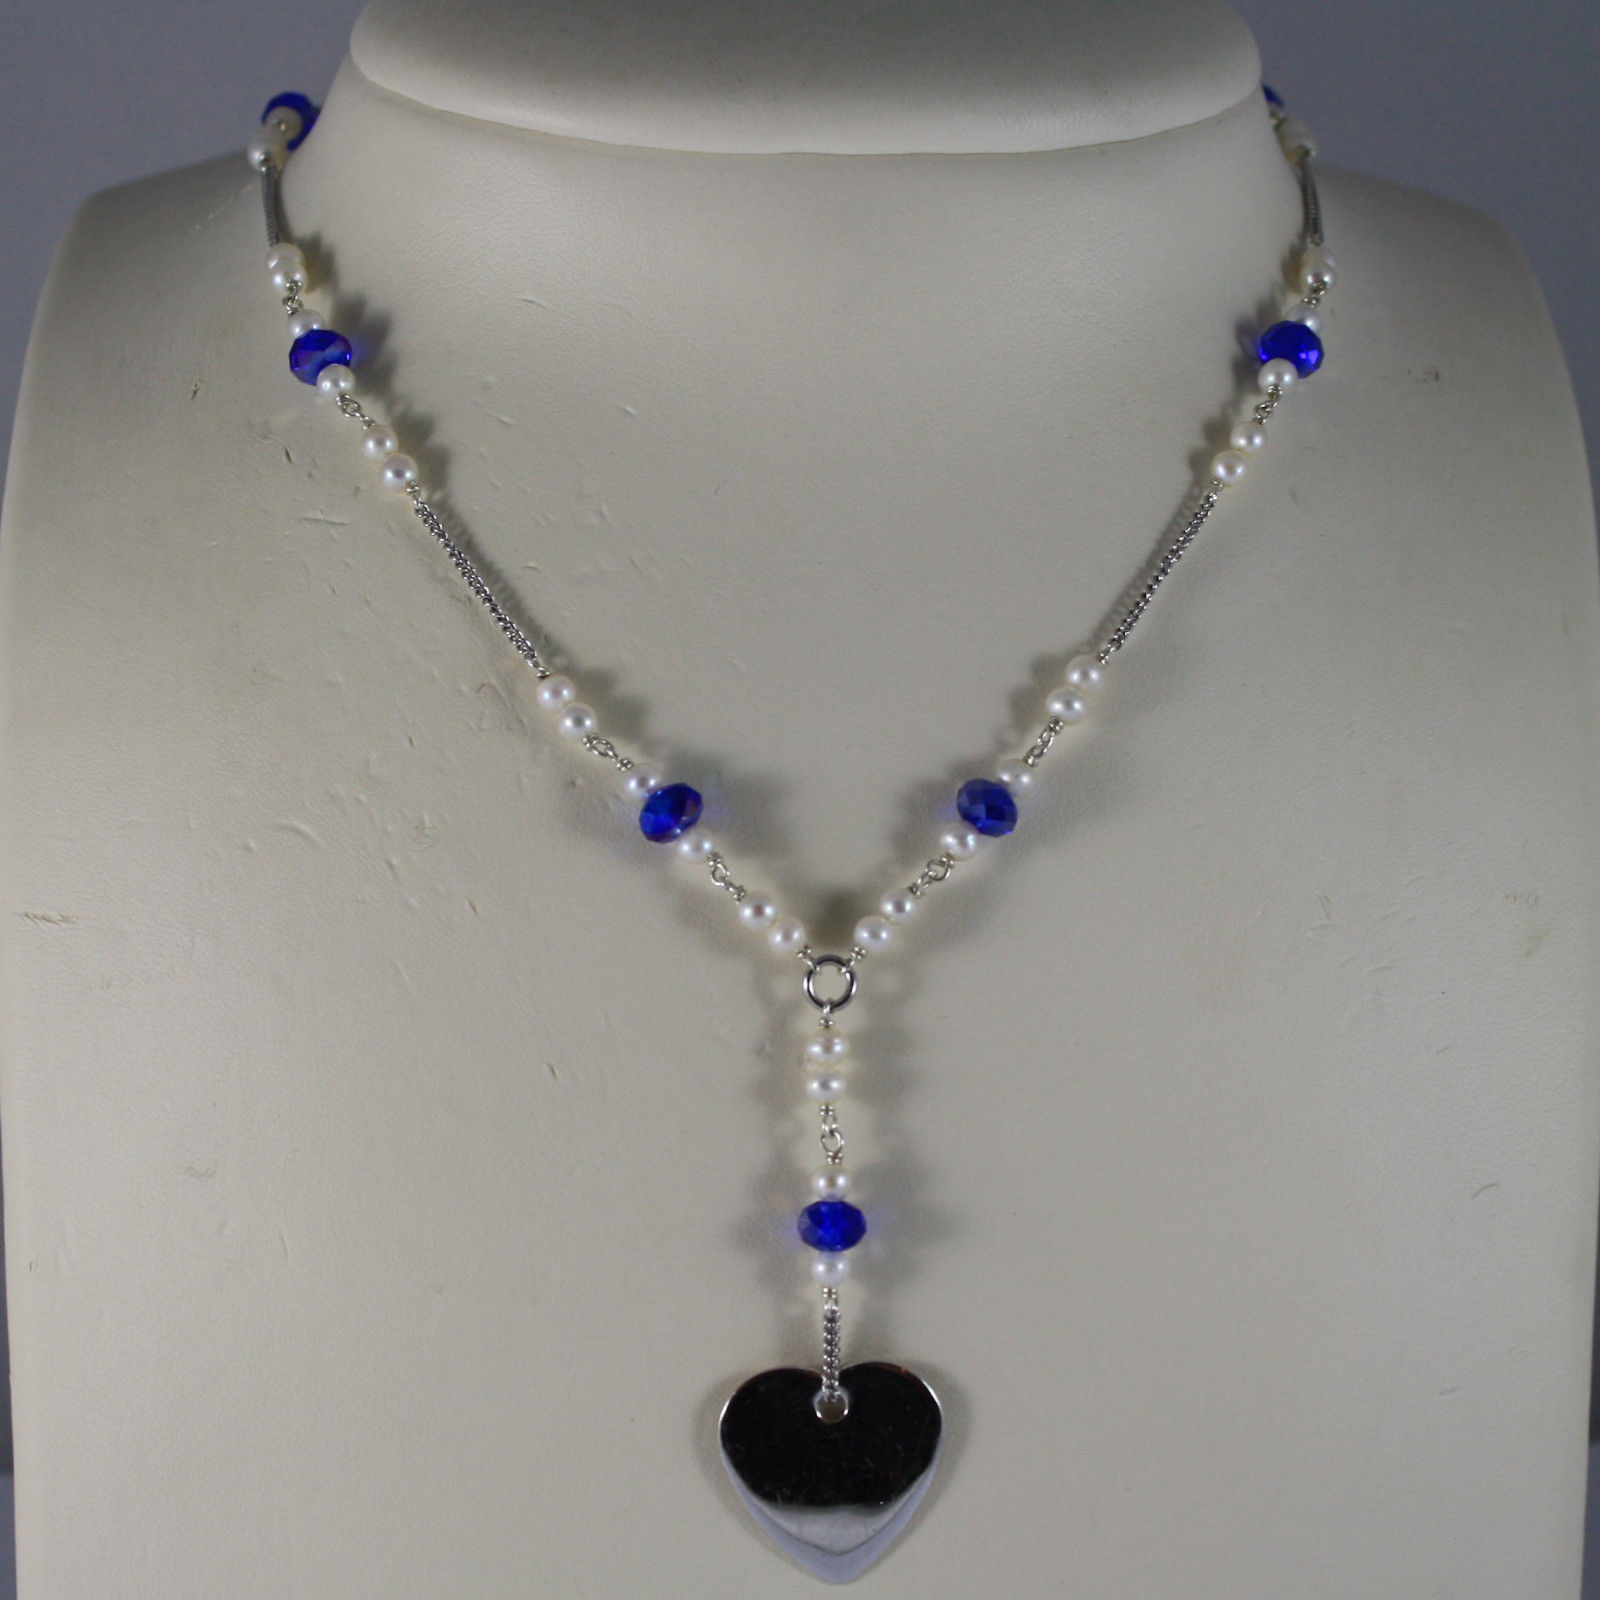 .925 RHODIUM NECKLACE WITH BLUETTE CRYSTALS, WHITE PEARLS AND HEART